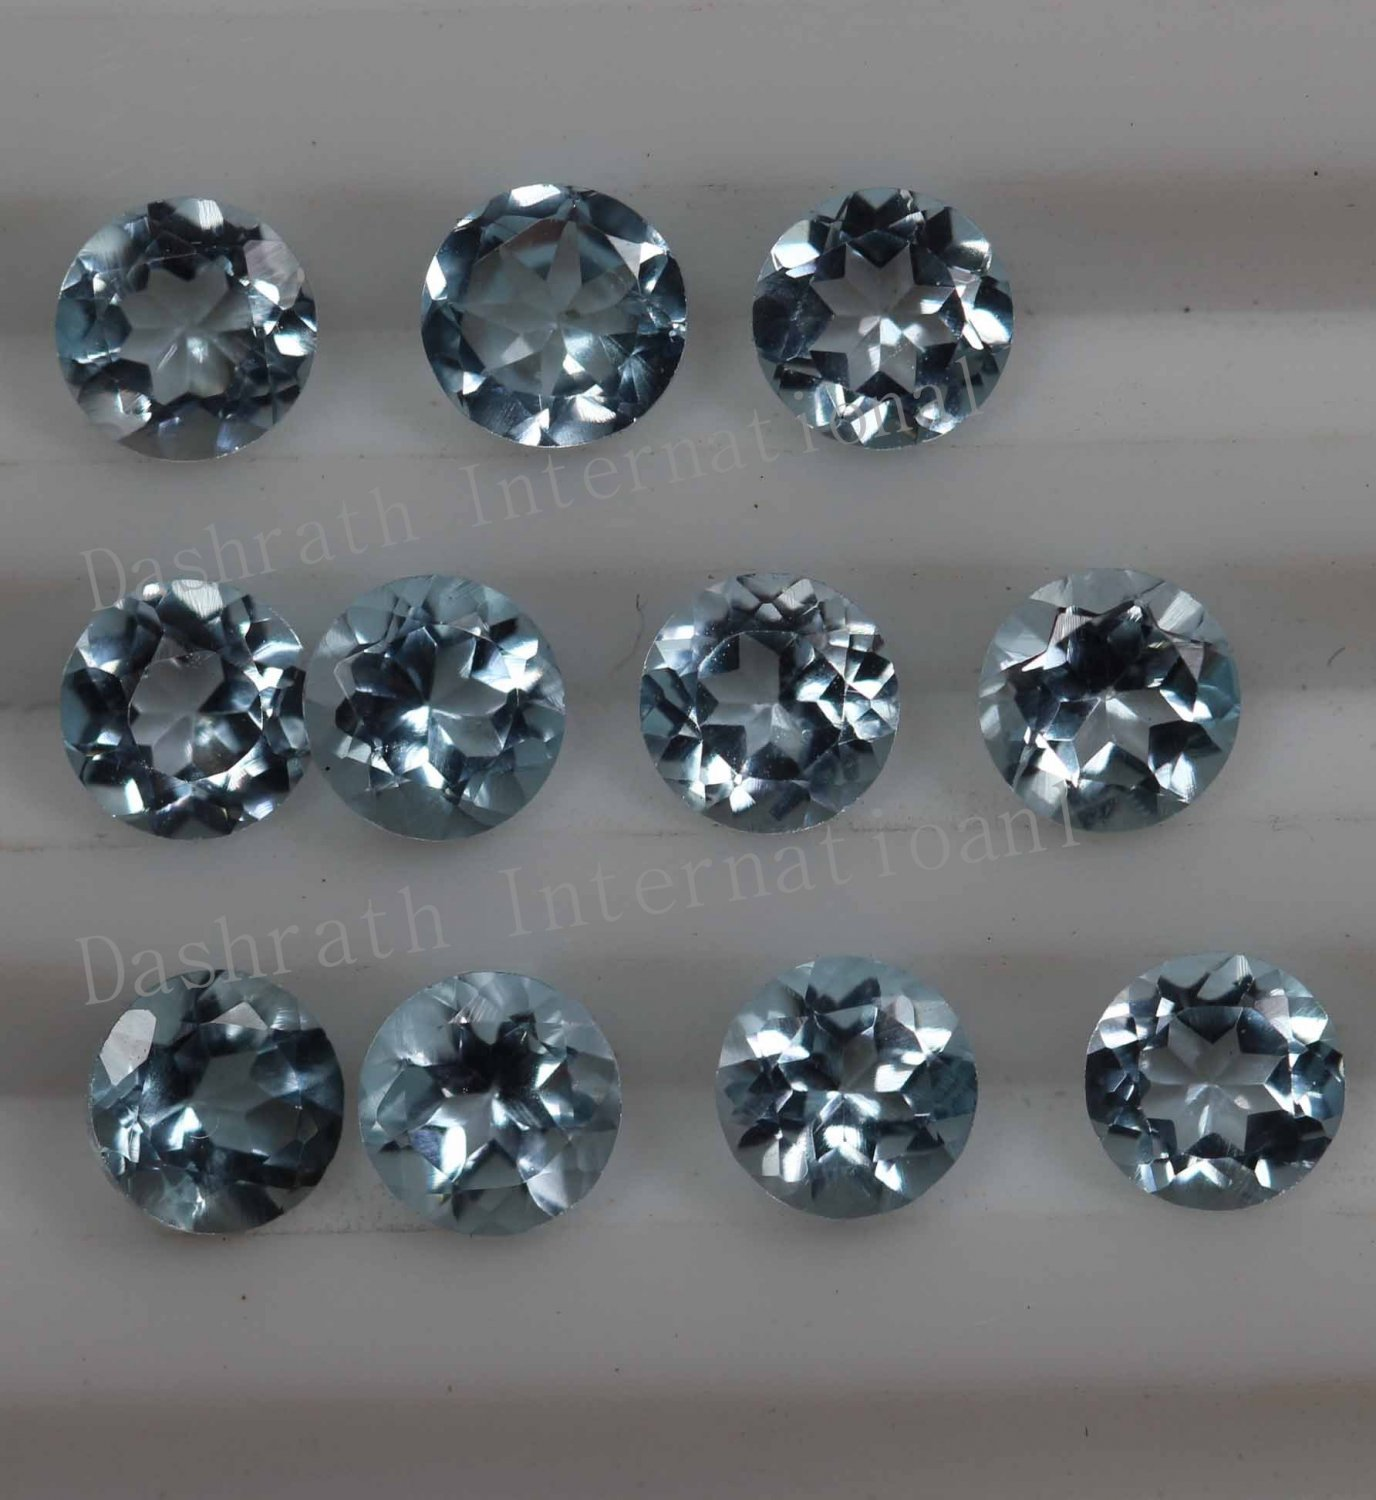 6mmNatural Sky Blue Topaz Faceted Cut Round 2 Piece (1 Pair ) Blue Color  Top Quality Loose Gemstone